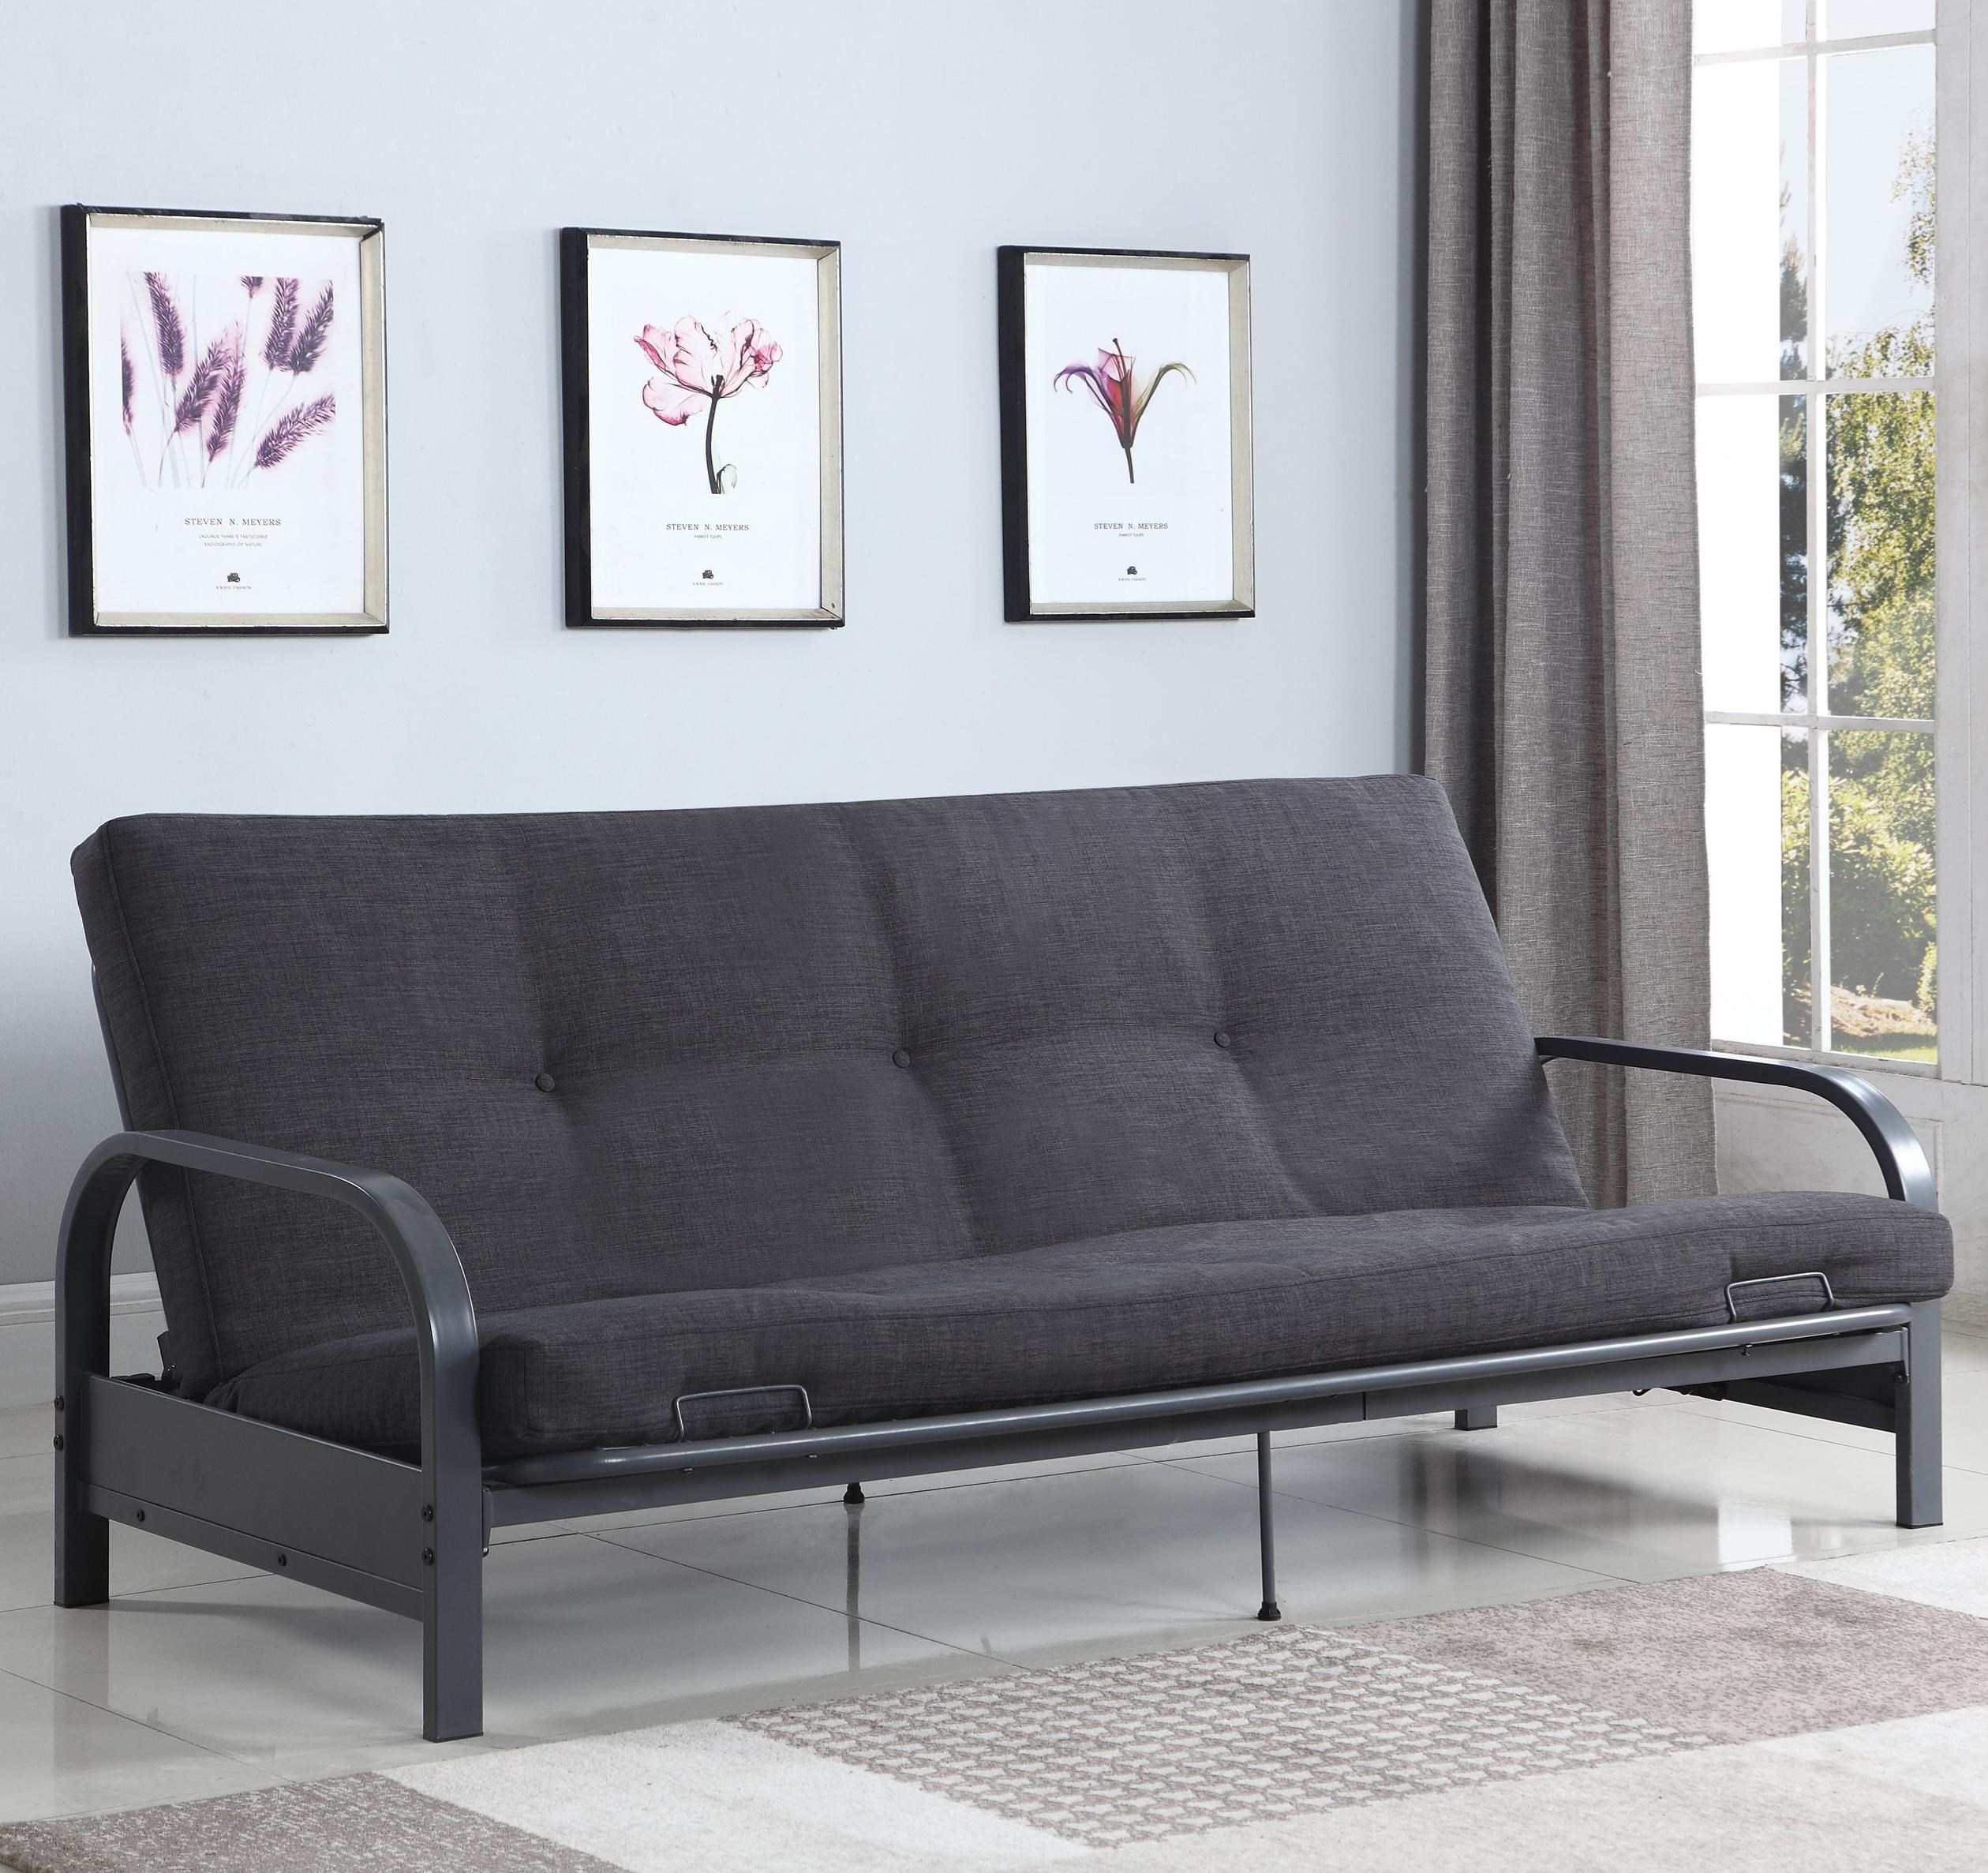 coaster sofa beds and futons 360008 contemporary futon with metal arms mattress not included. Black Bedroom Furniture Sets. Home Design Ideas